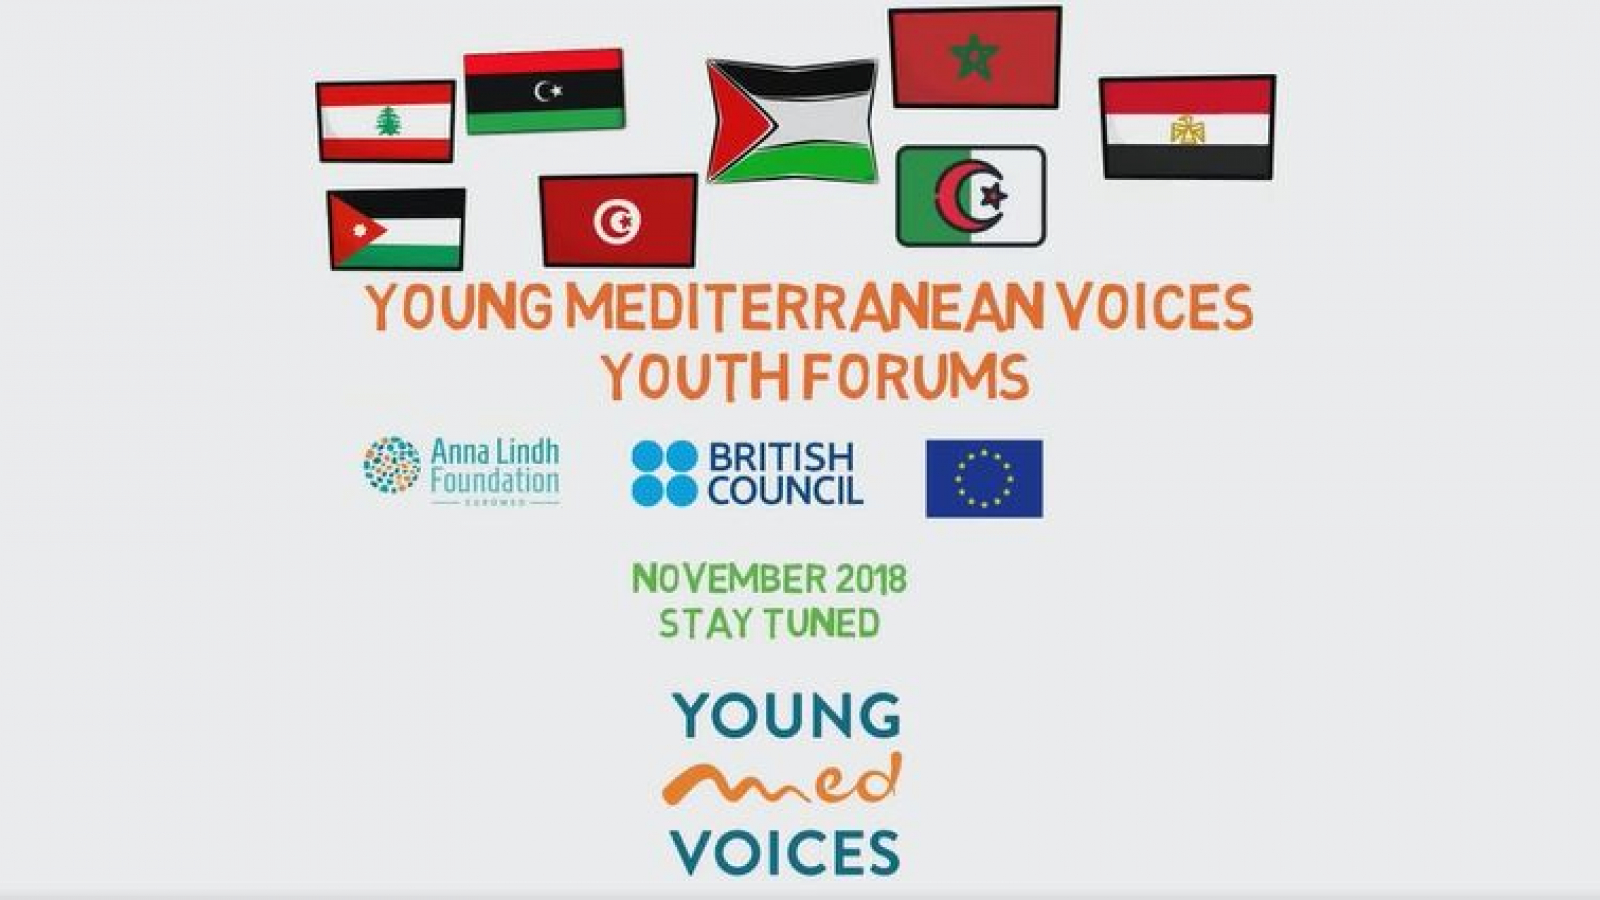 The Young Mediterranean Voices Youth Forums kicked off